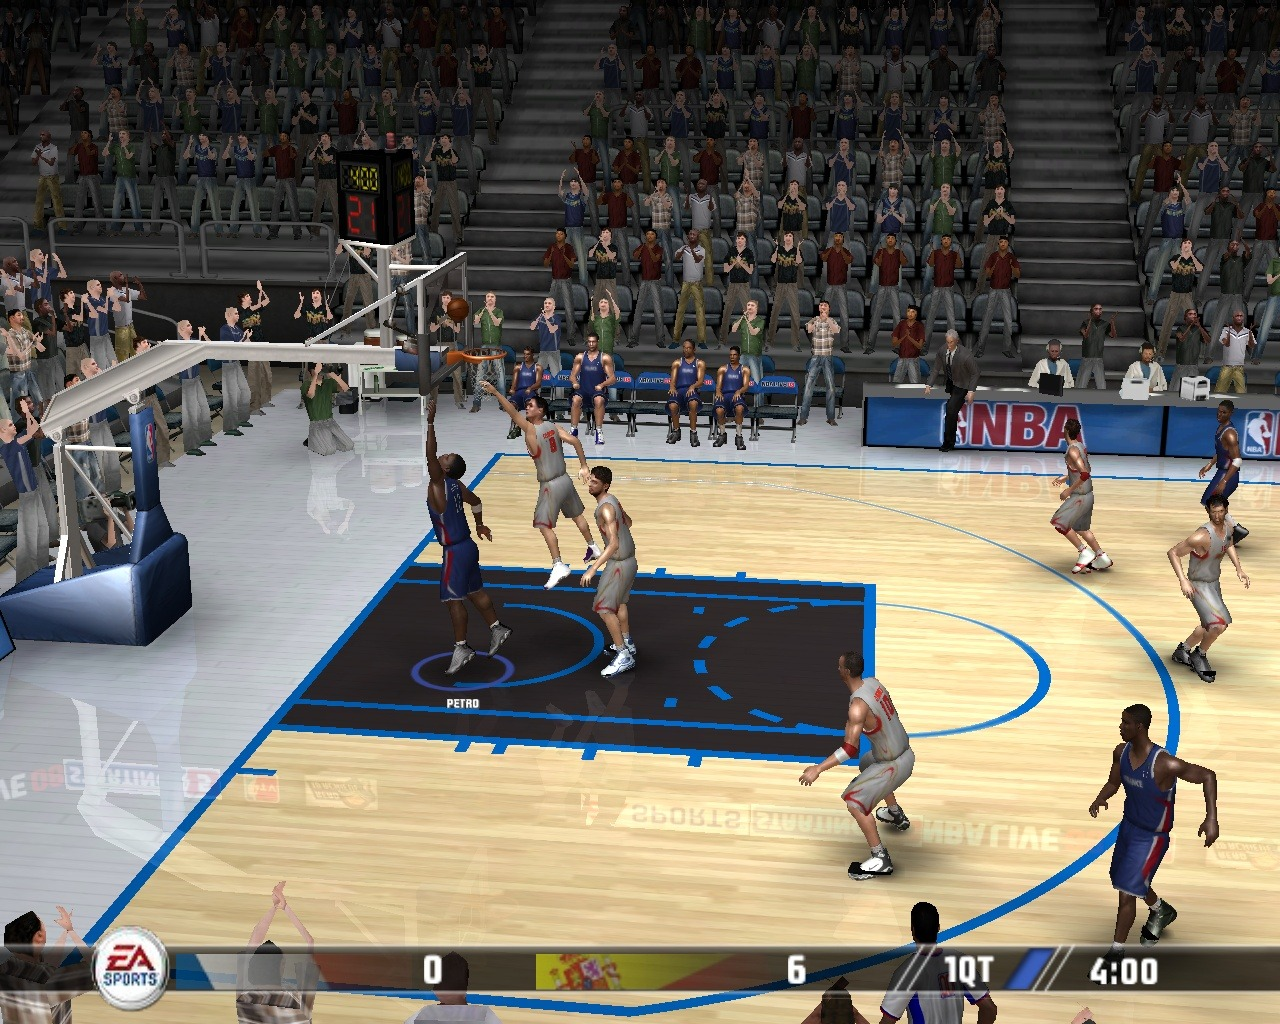 NBA Live 08 Free Full Game Download - Free PC Games Den